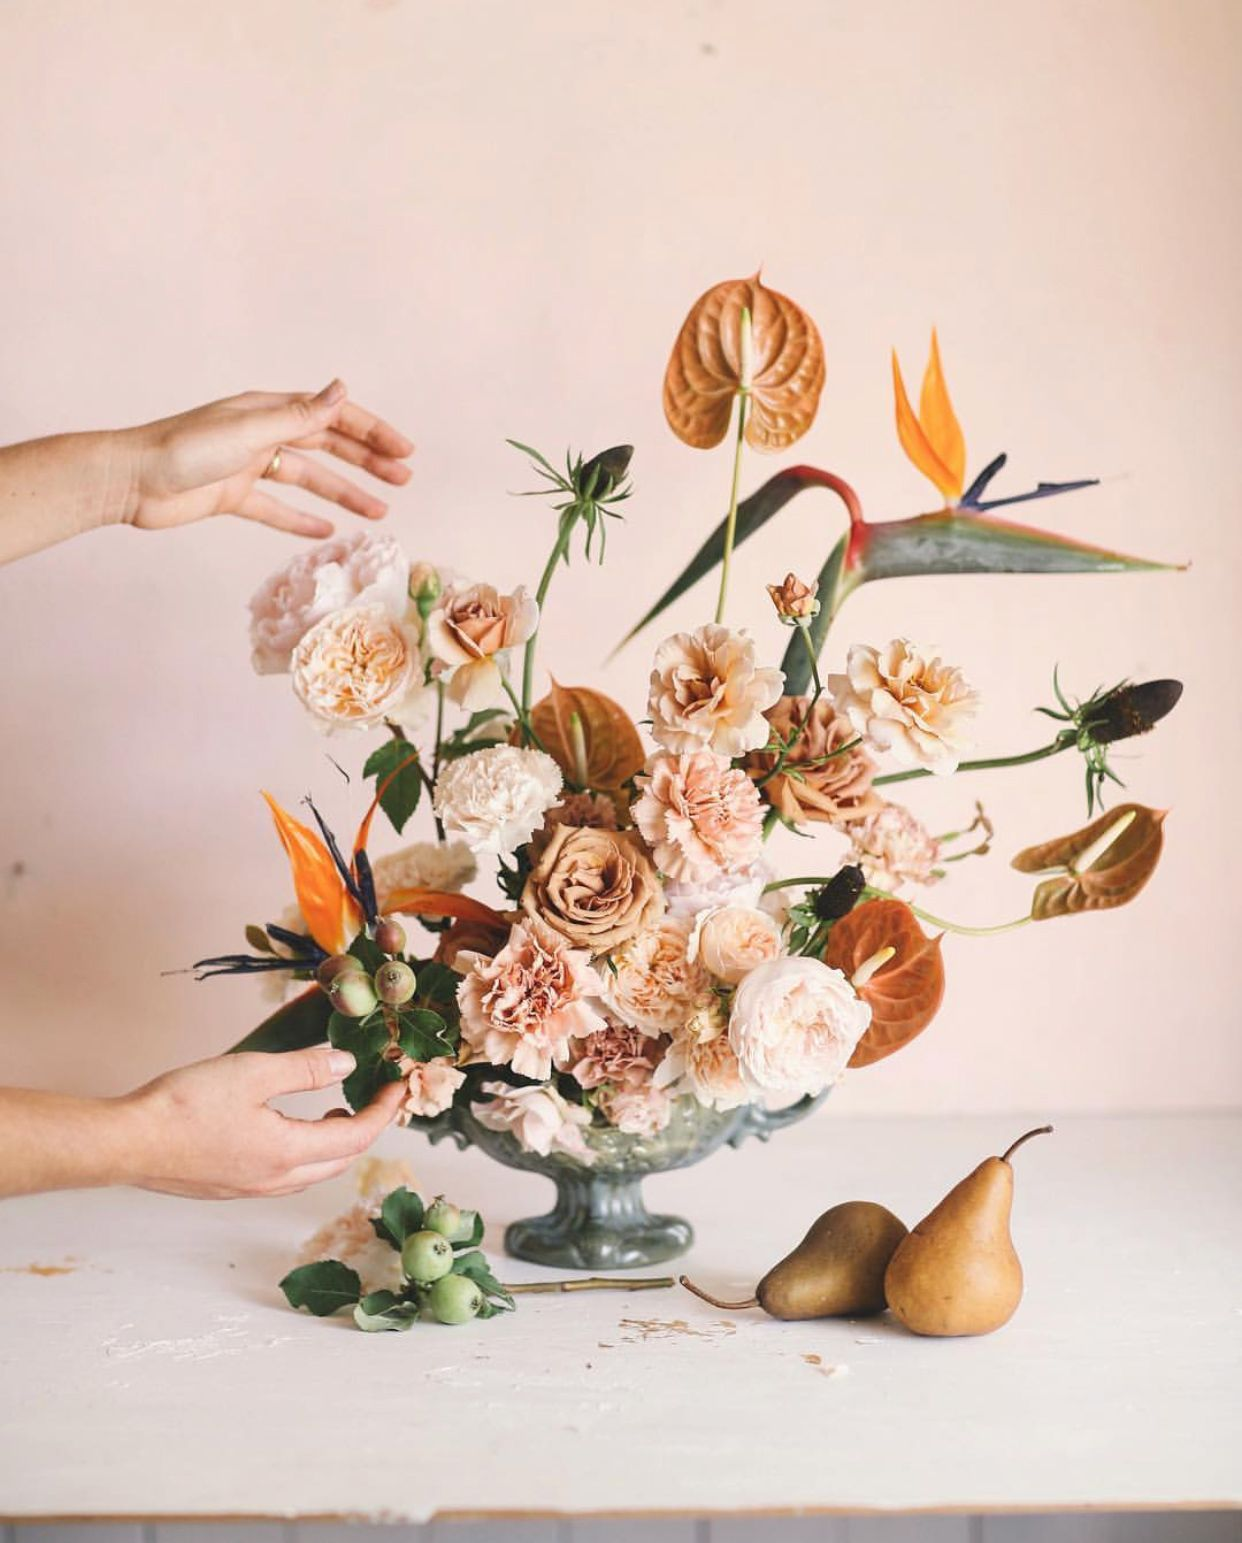 12 amazing florists to follow on instagram